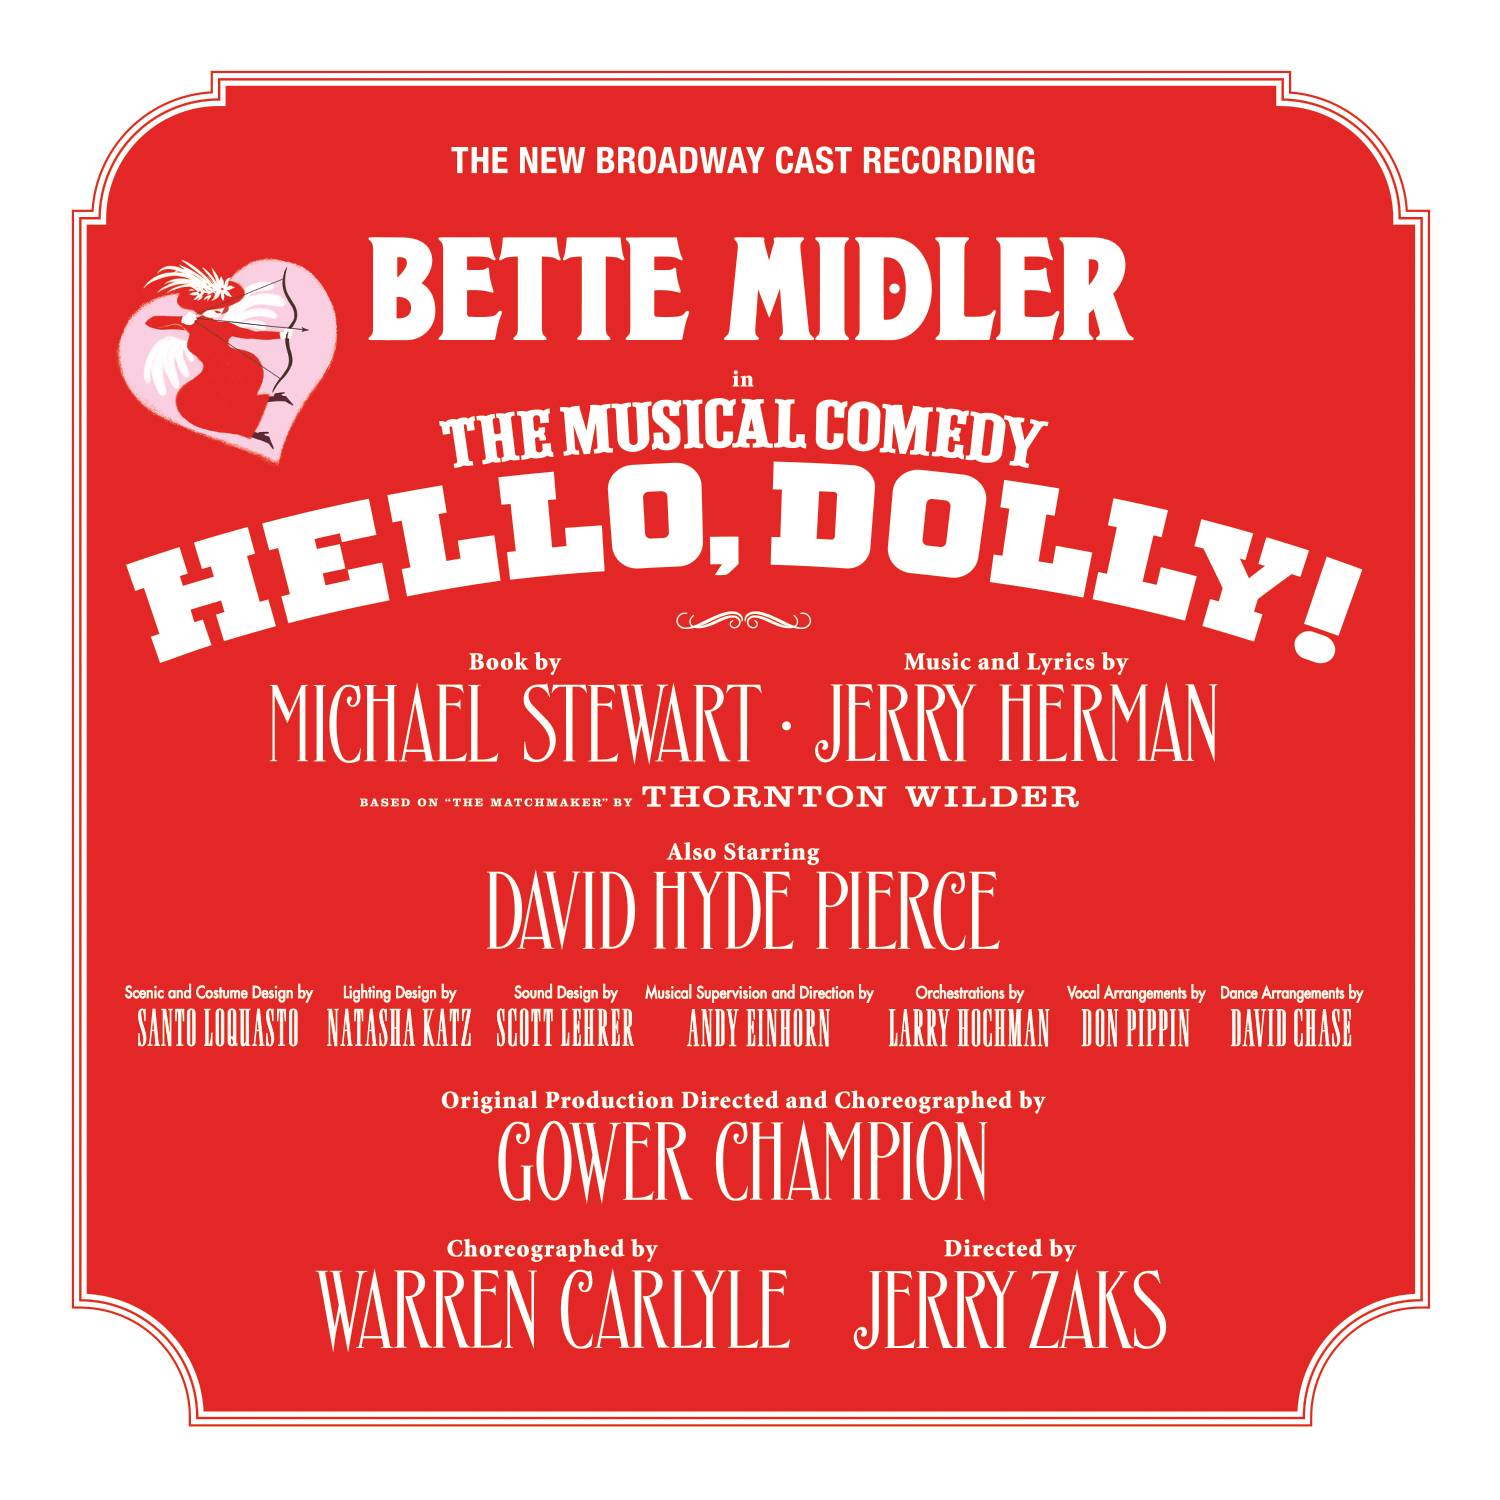 HELLO, DOLLY! NEW BROADWAY CAST RECORDING (2017)